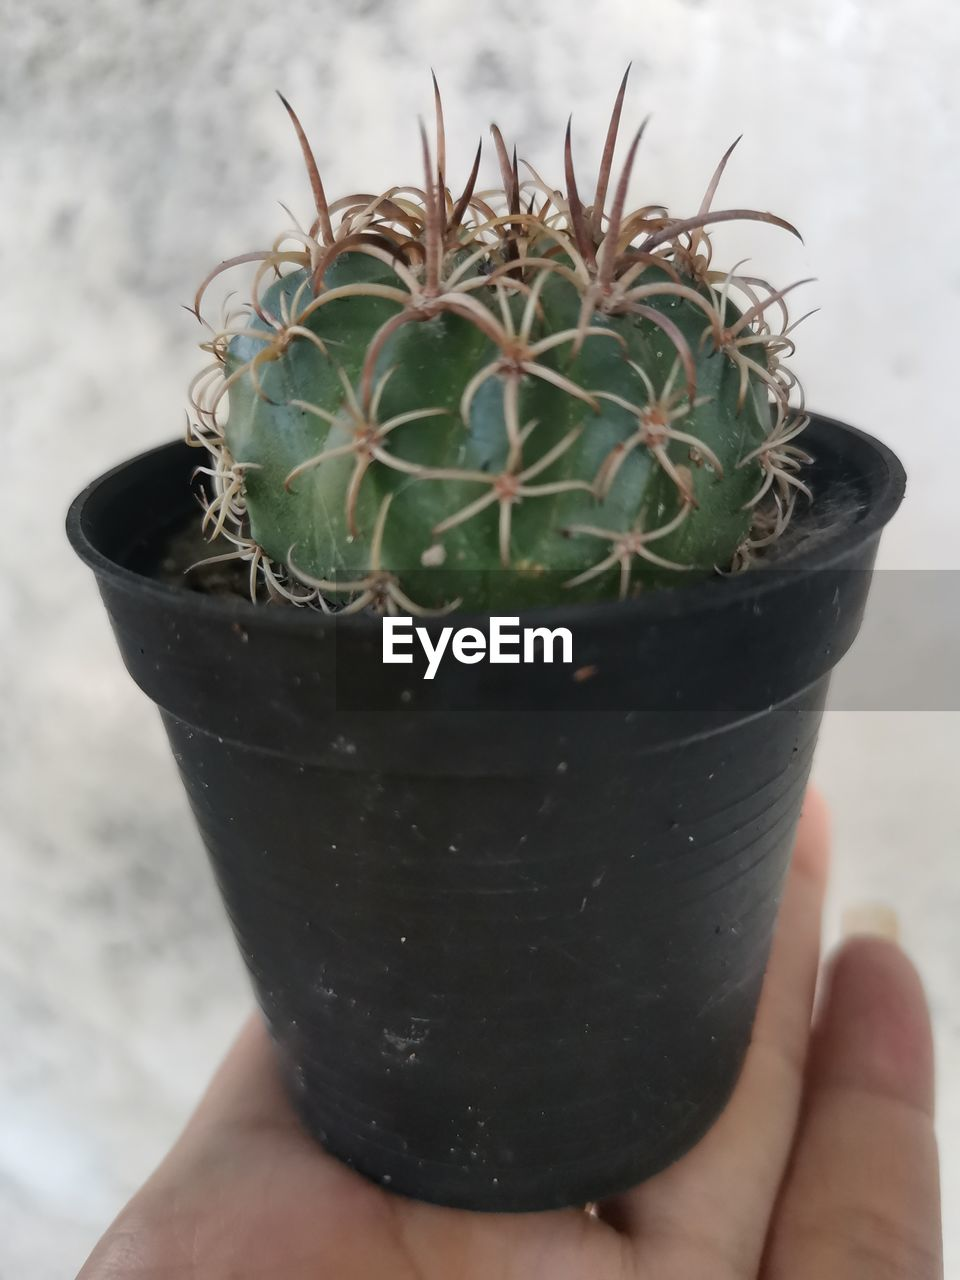 CROPPED IMAGE OF PERSON HOLDING CACTUS IN POT